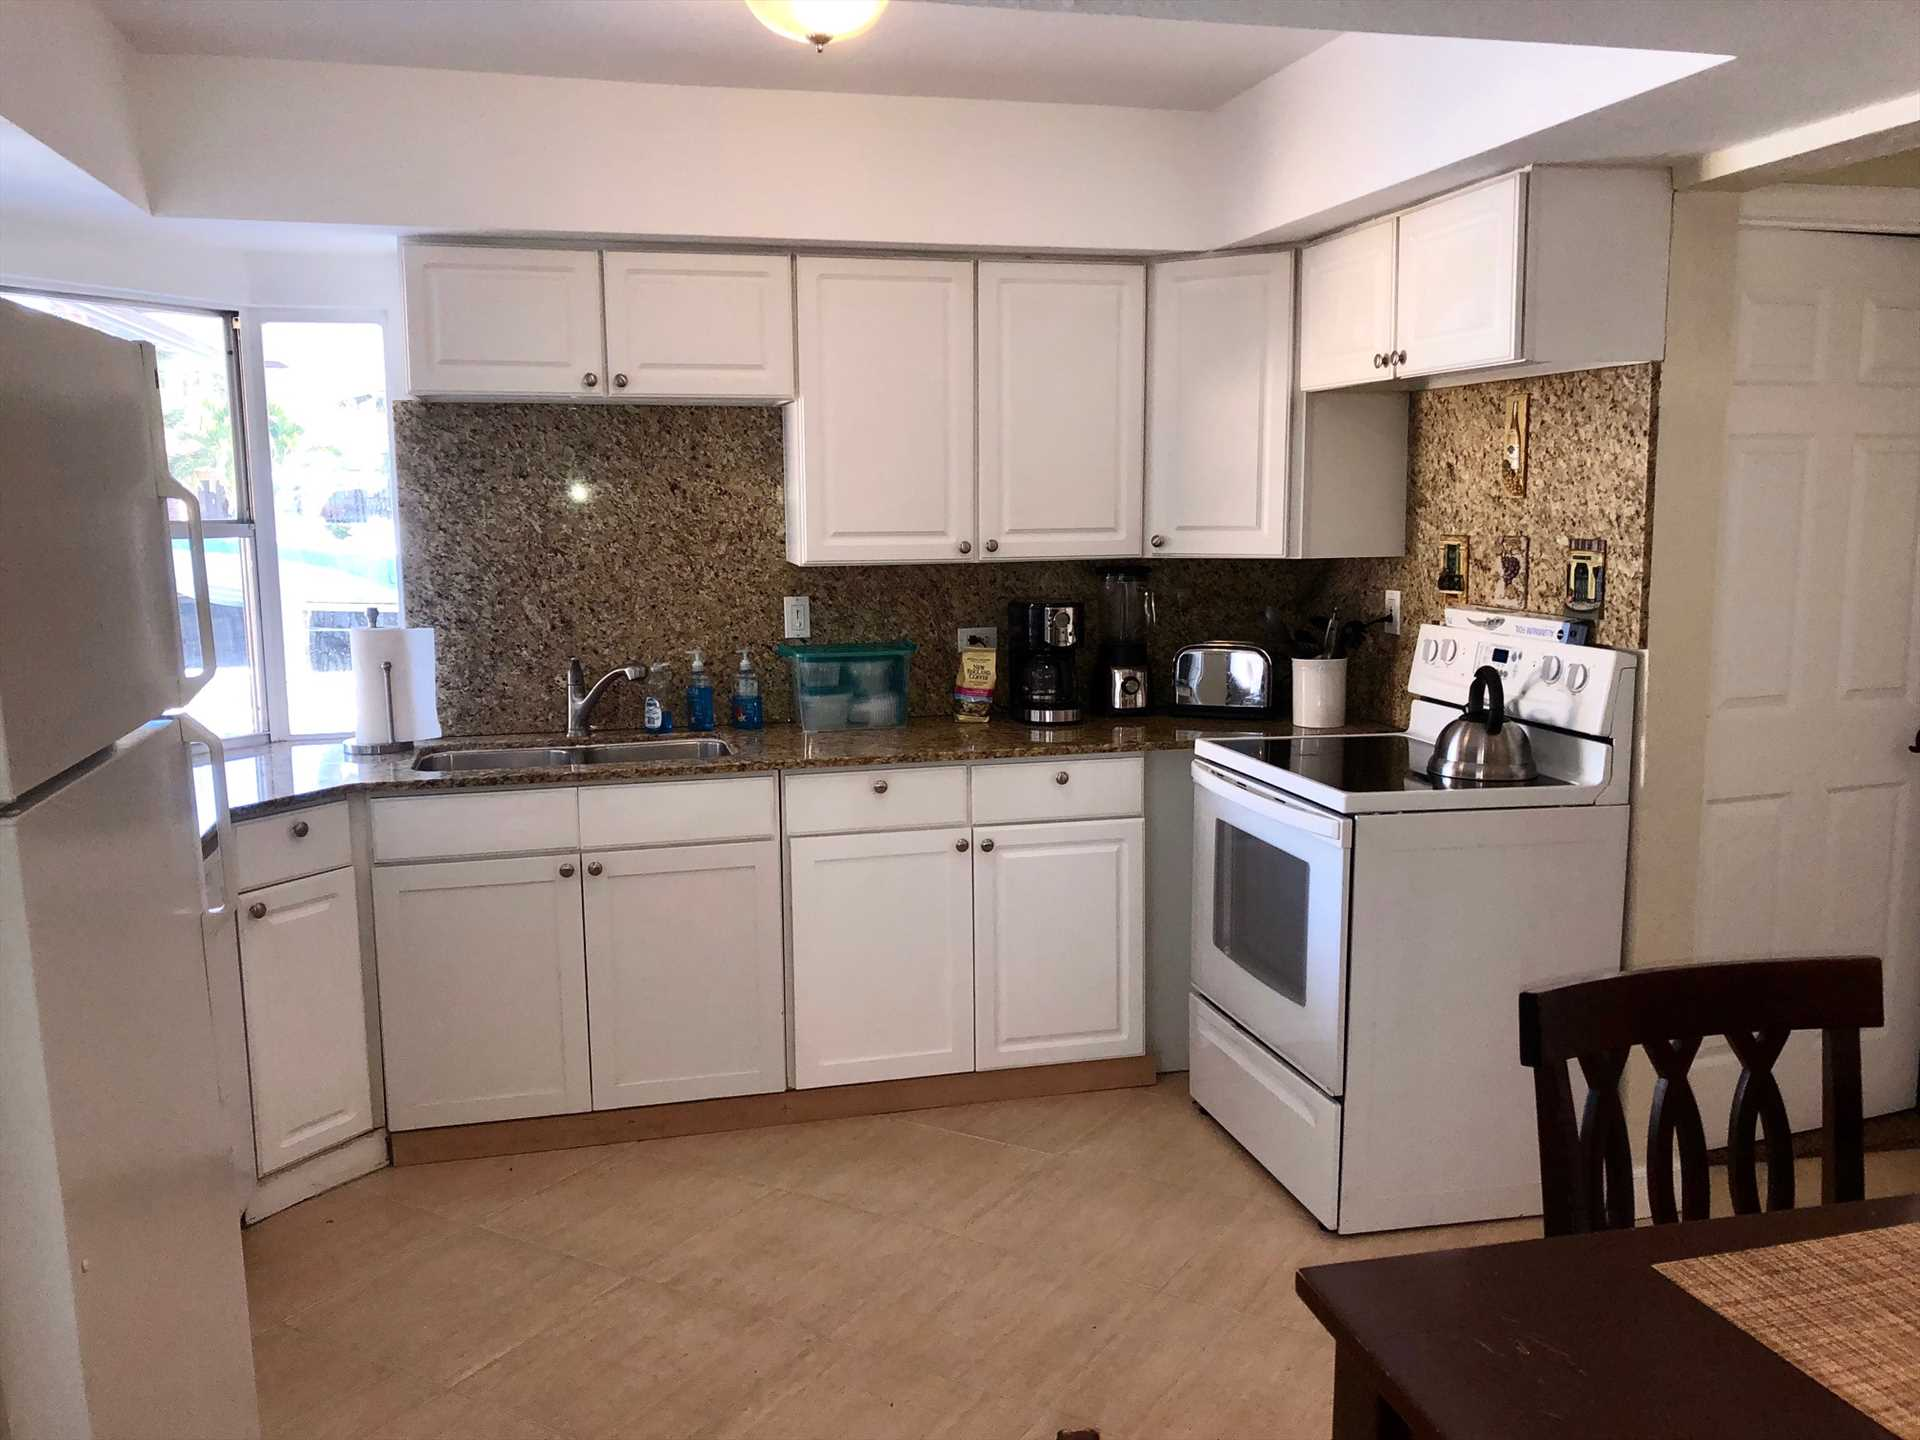 Fully equipped kitchen has all the appliances and features p